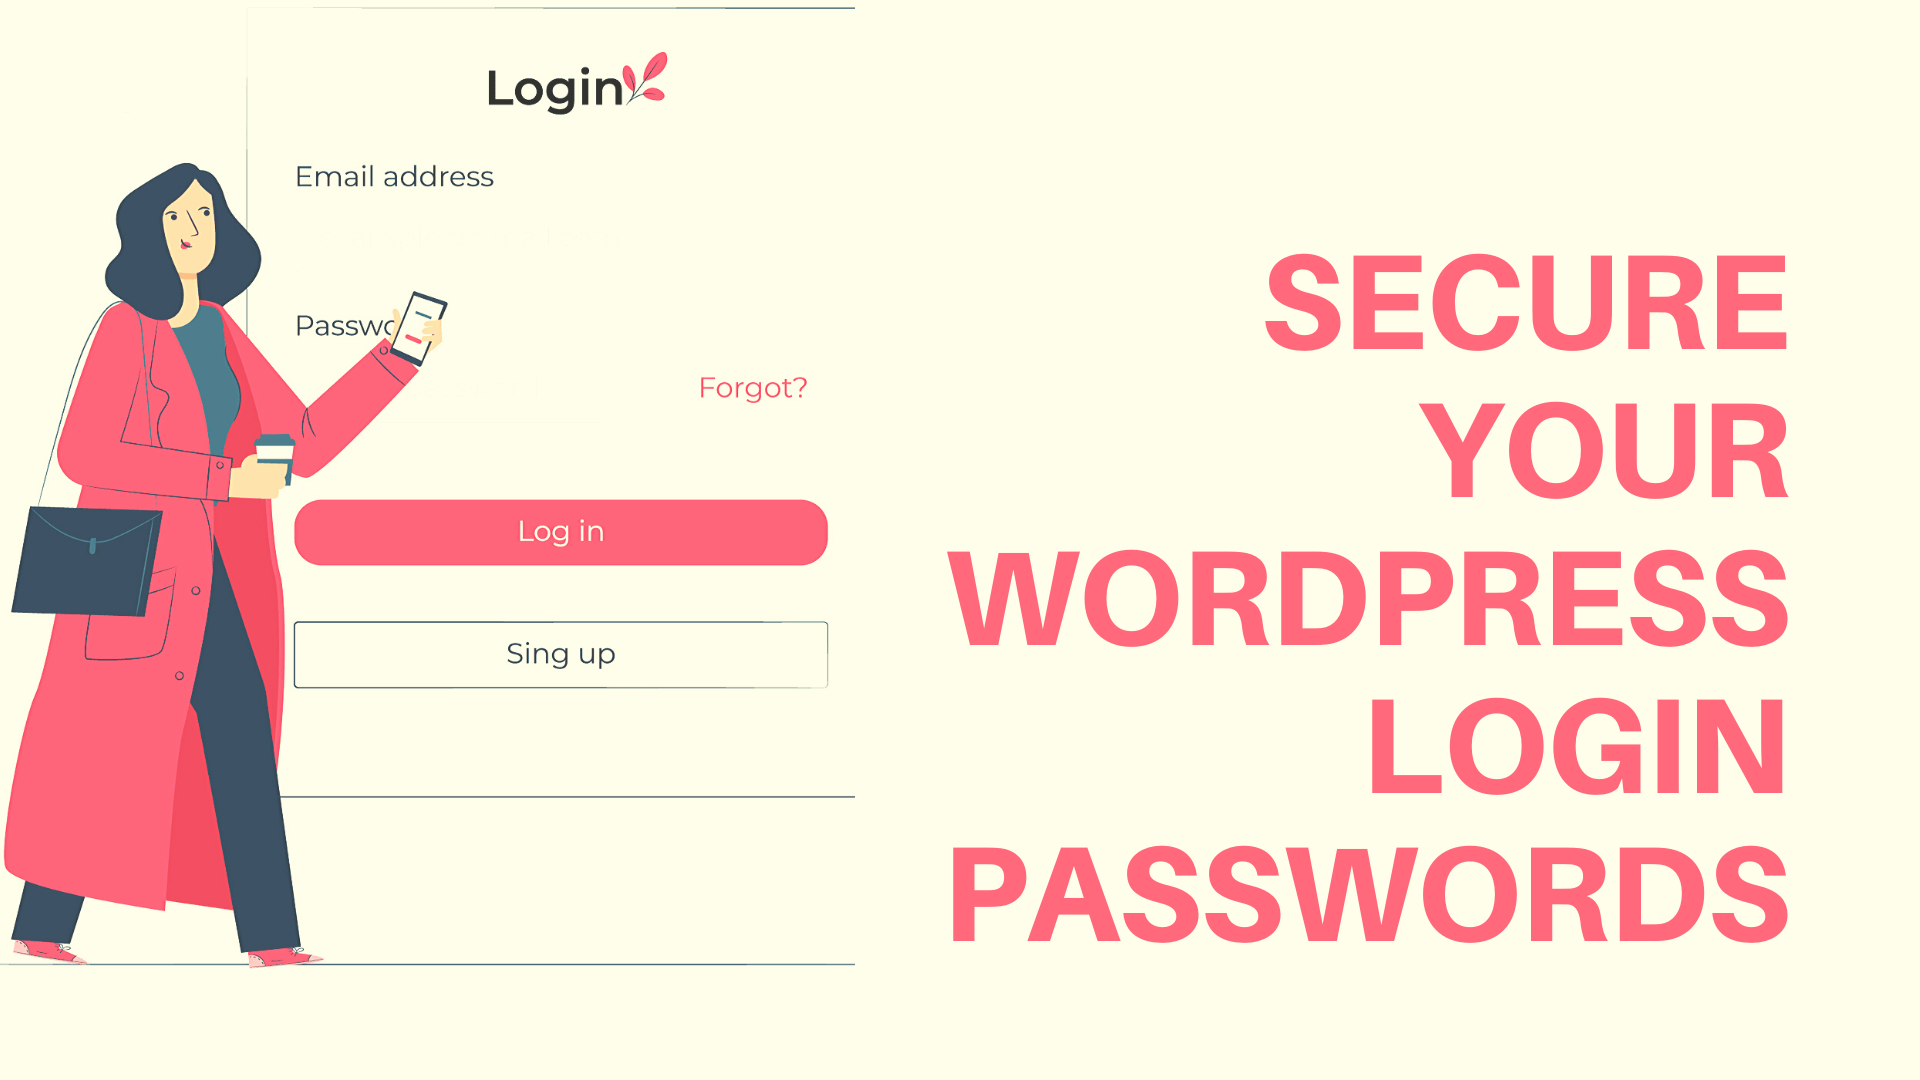 Choosing Secure passwords for your WordPress sites.